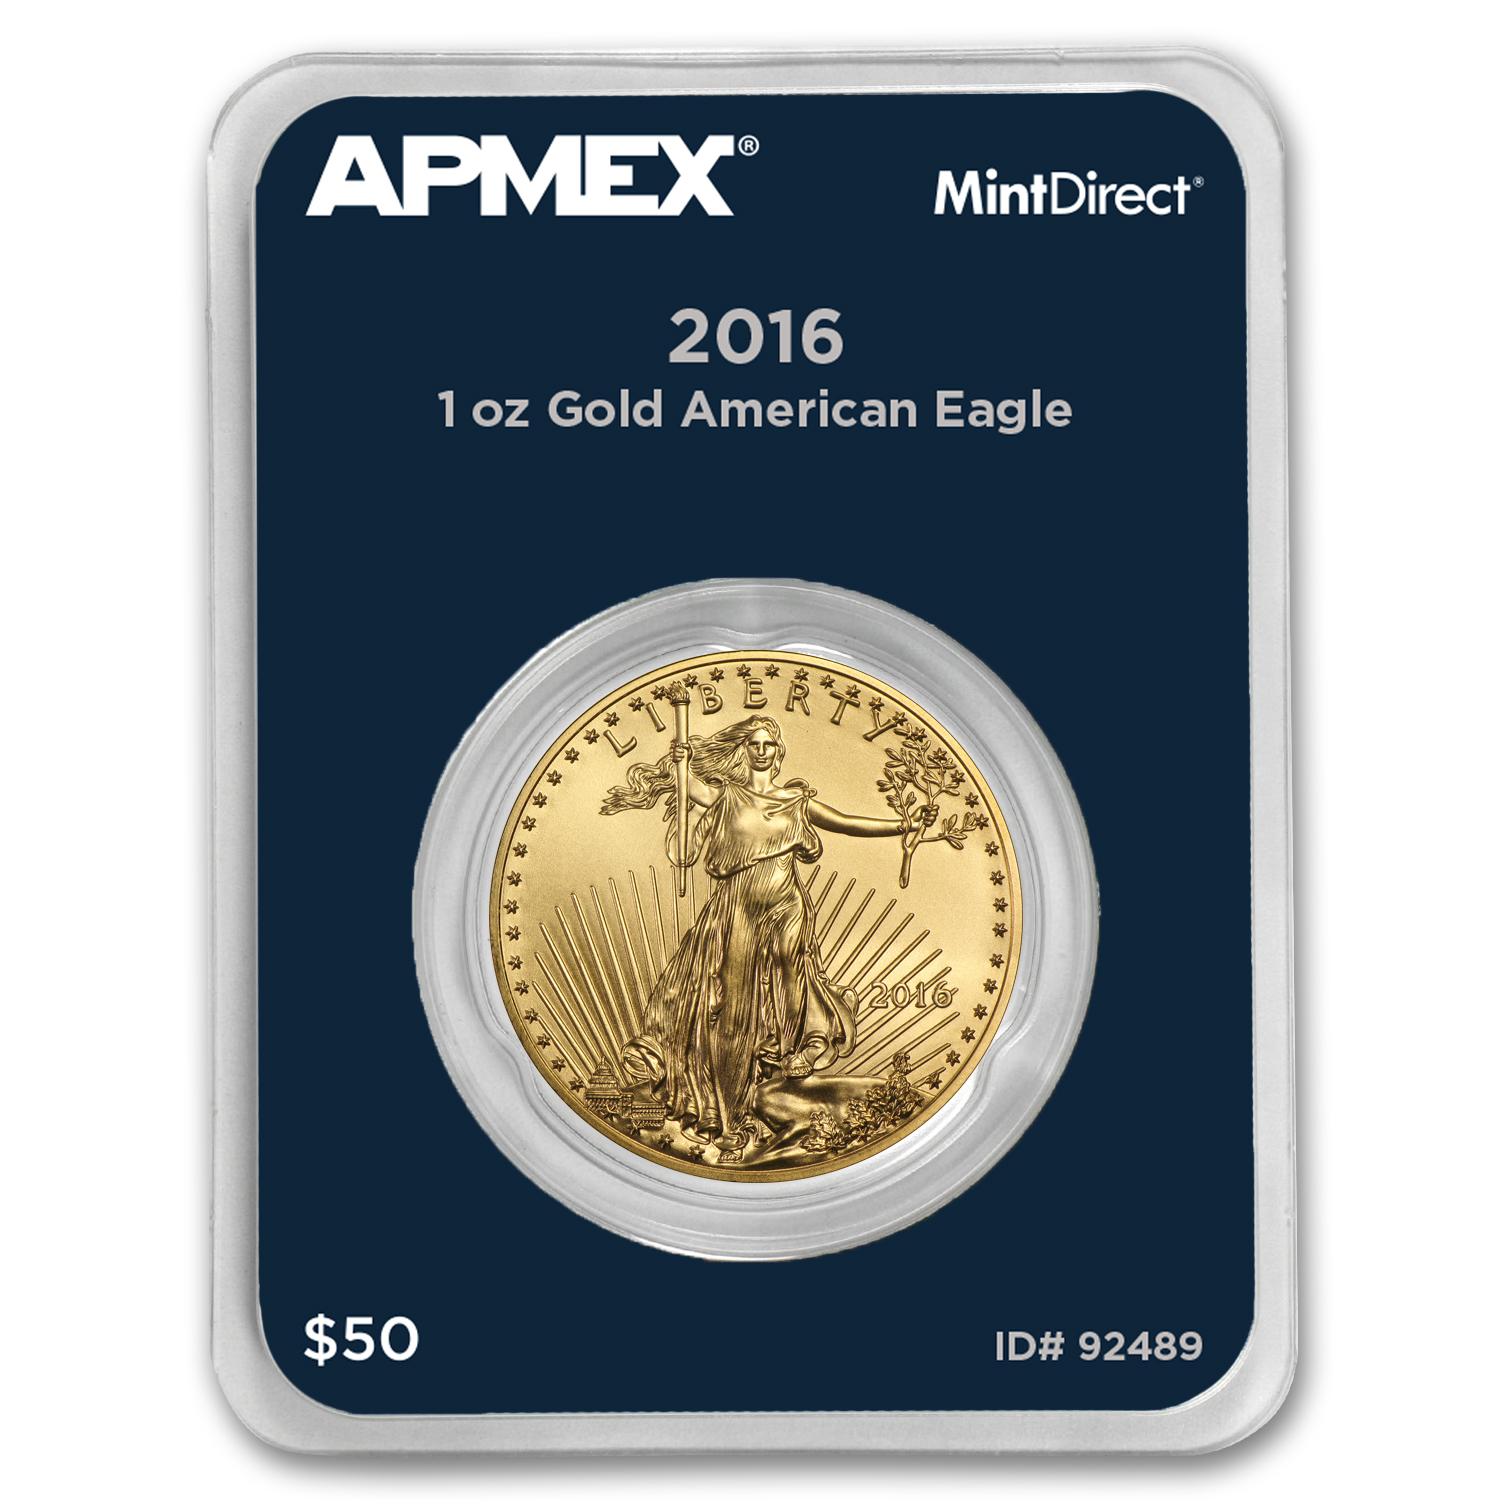 2016 1 oz Gold American Eagle (MintDirect® Single)